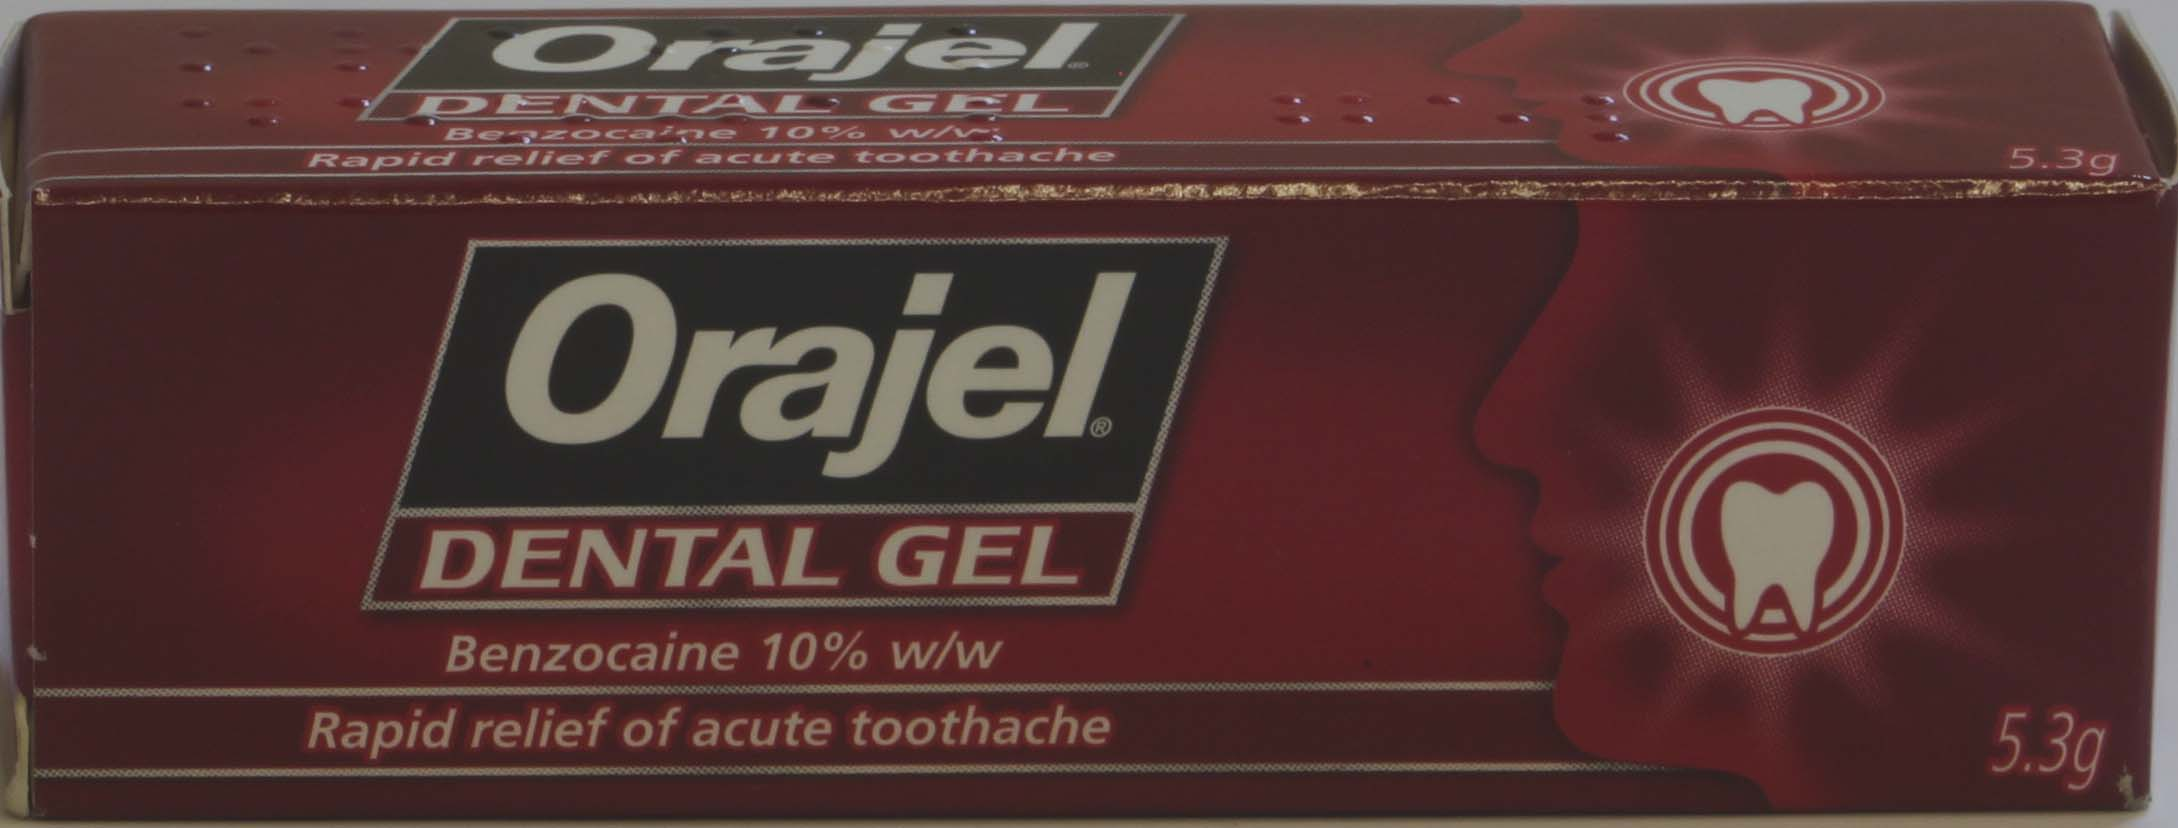 Orajel Dental Gel - 5.3g